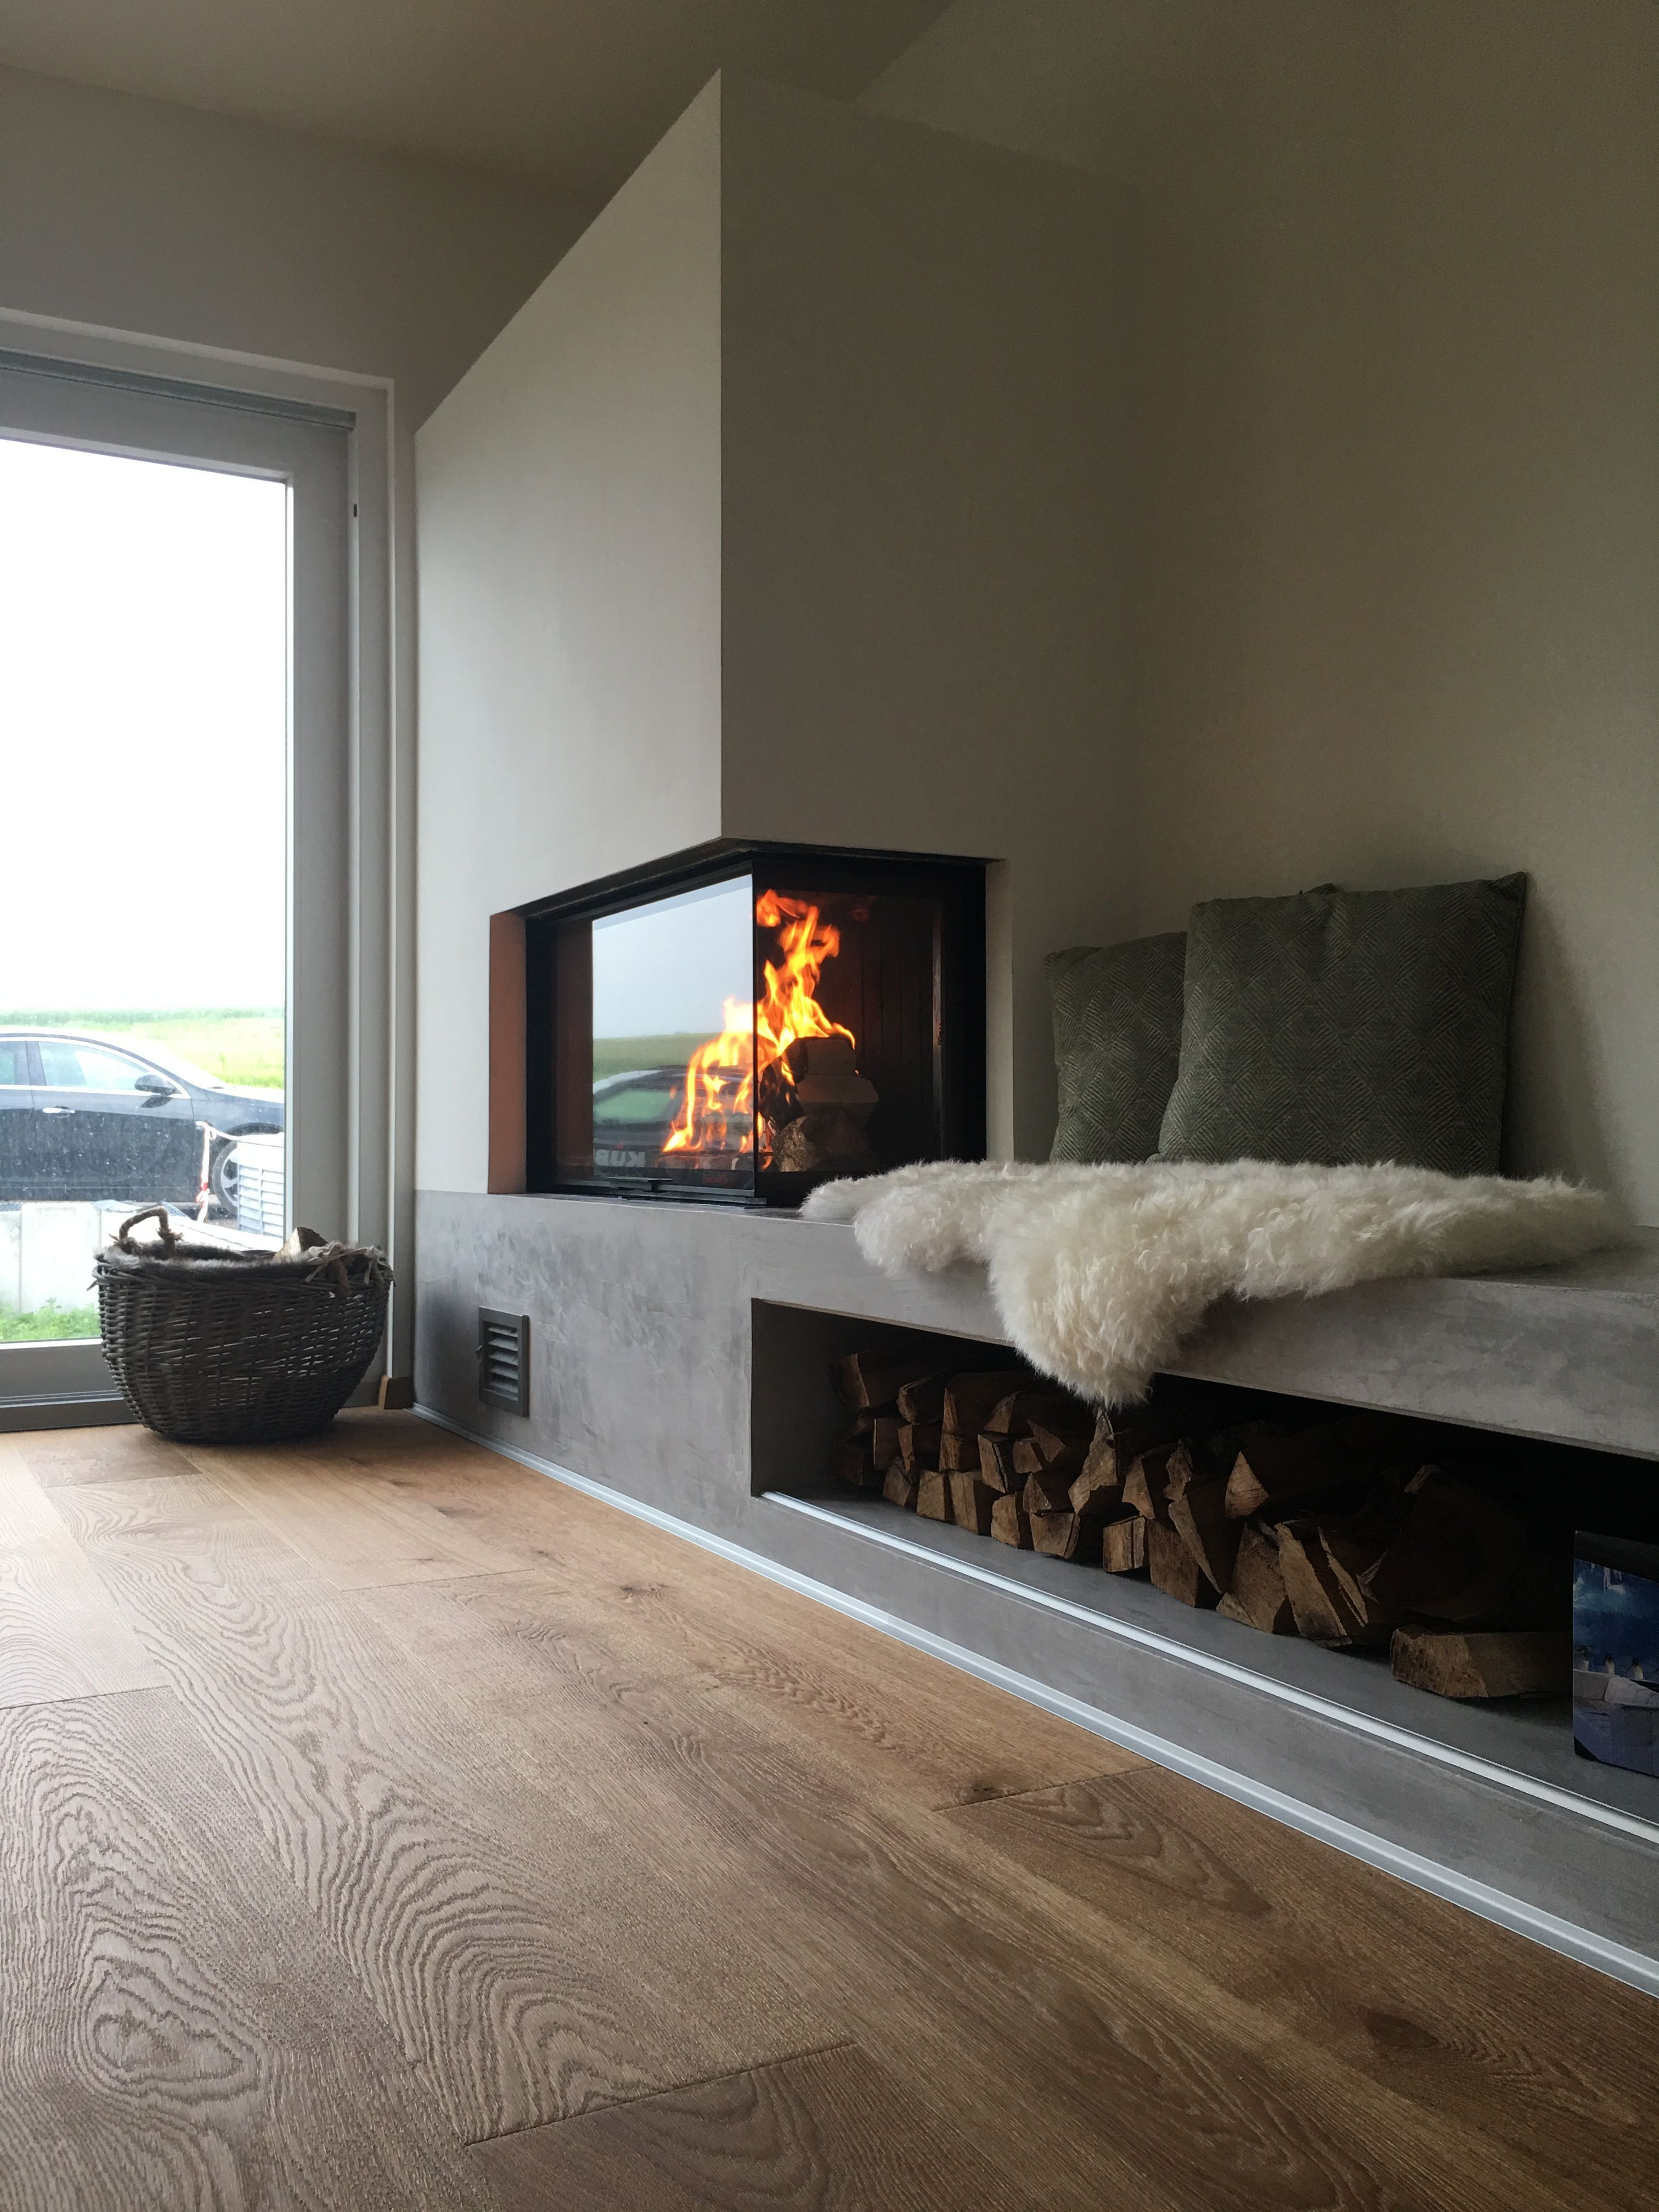 Photo of KUBBE fireplaces and stoves &; The way to your dream fireplace woonkamerideeen &; My blo …